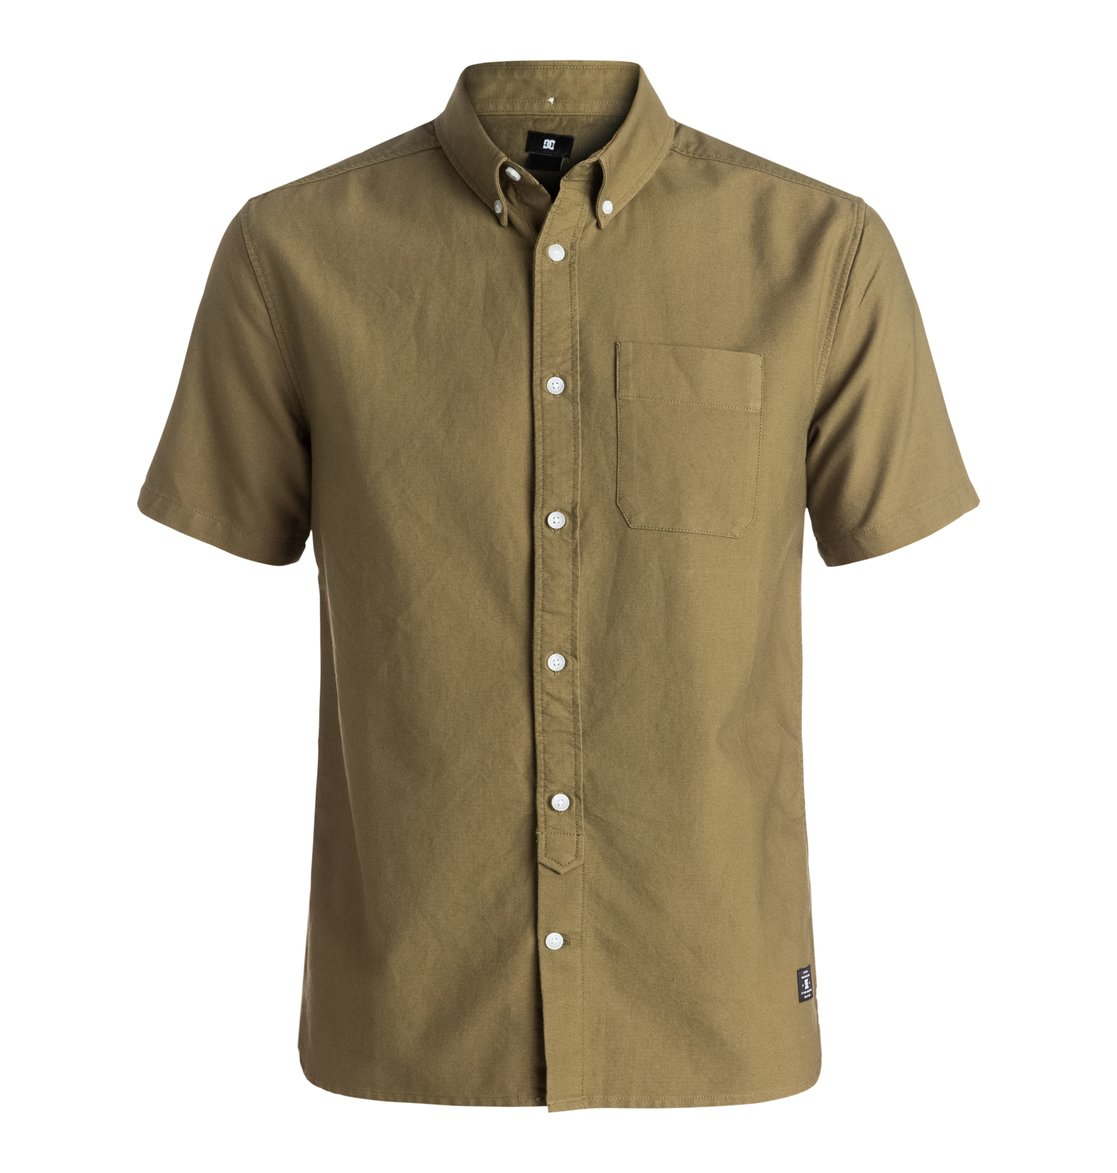 Men 39 s oxford short sleeve shirt edywt03144 dc shoes for Mens short sleeve oxford shirt